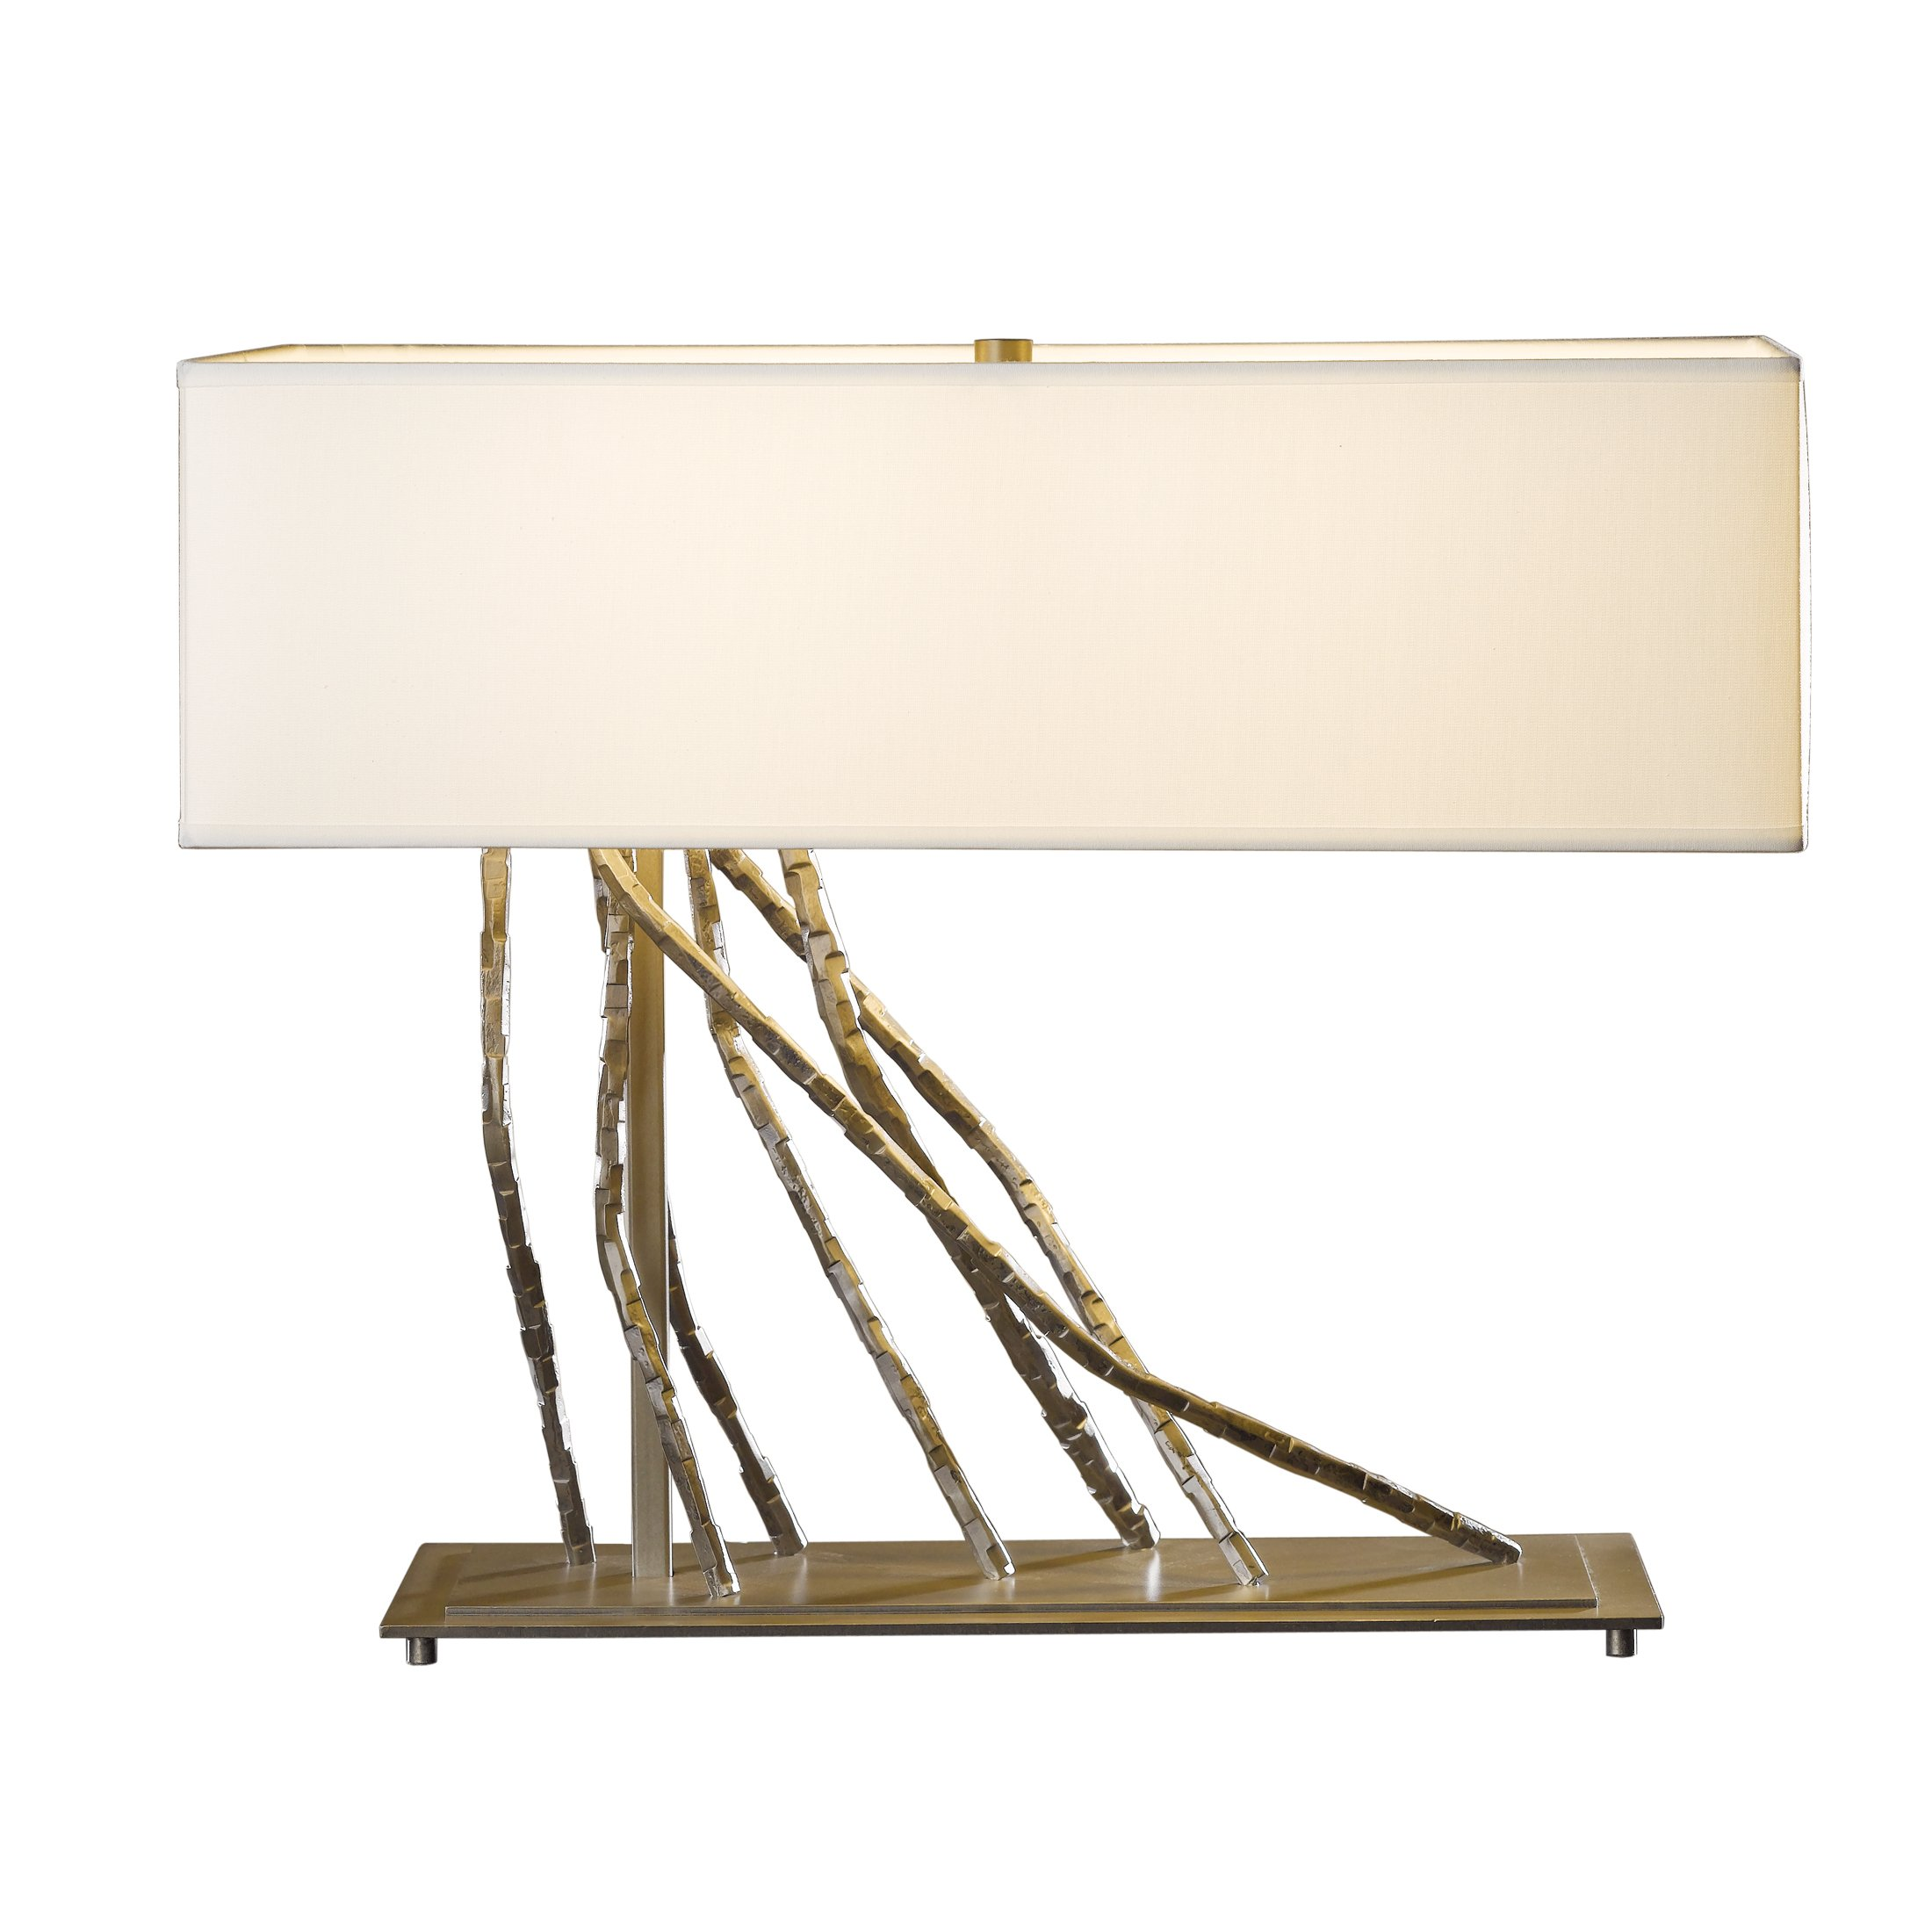 Hubbardton Forge Brindille Table Lamp 277660-1076, Soft Gold